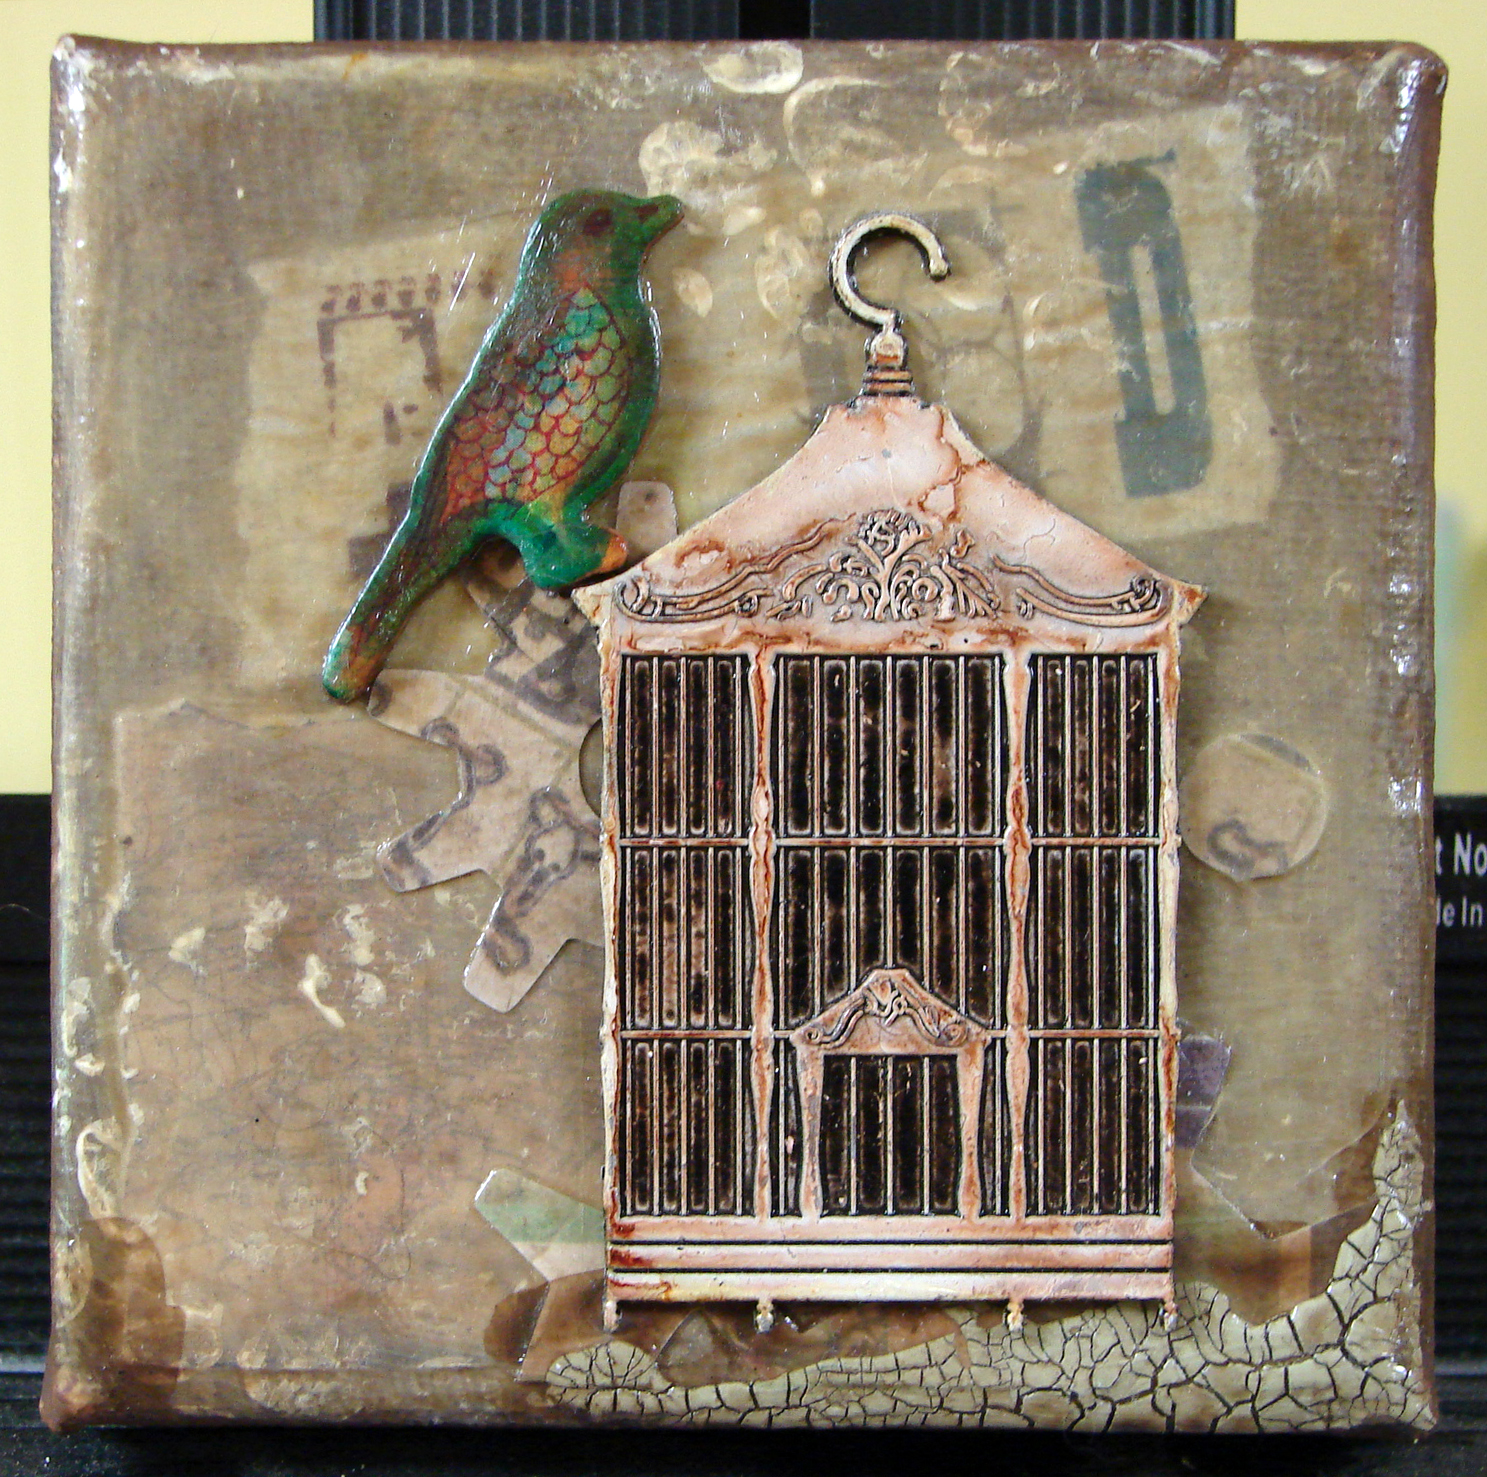 Small Mixed Media Assemblage Art on Canvas, 2